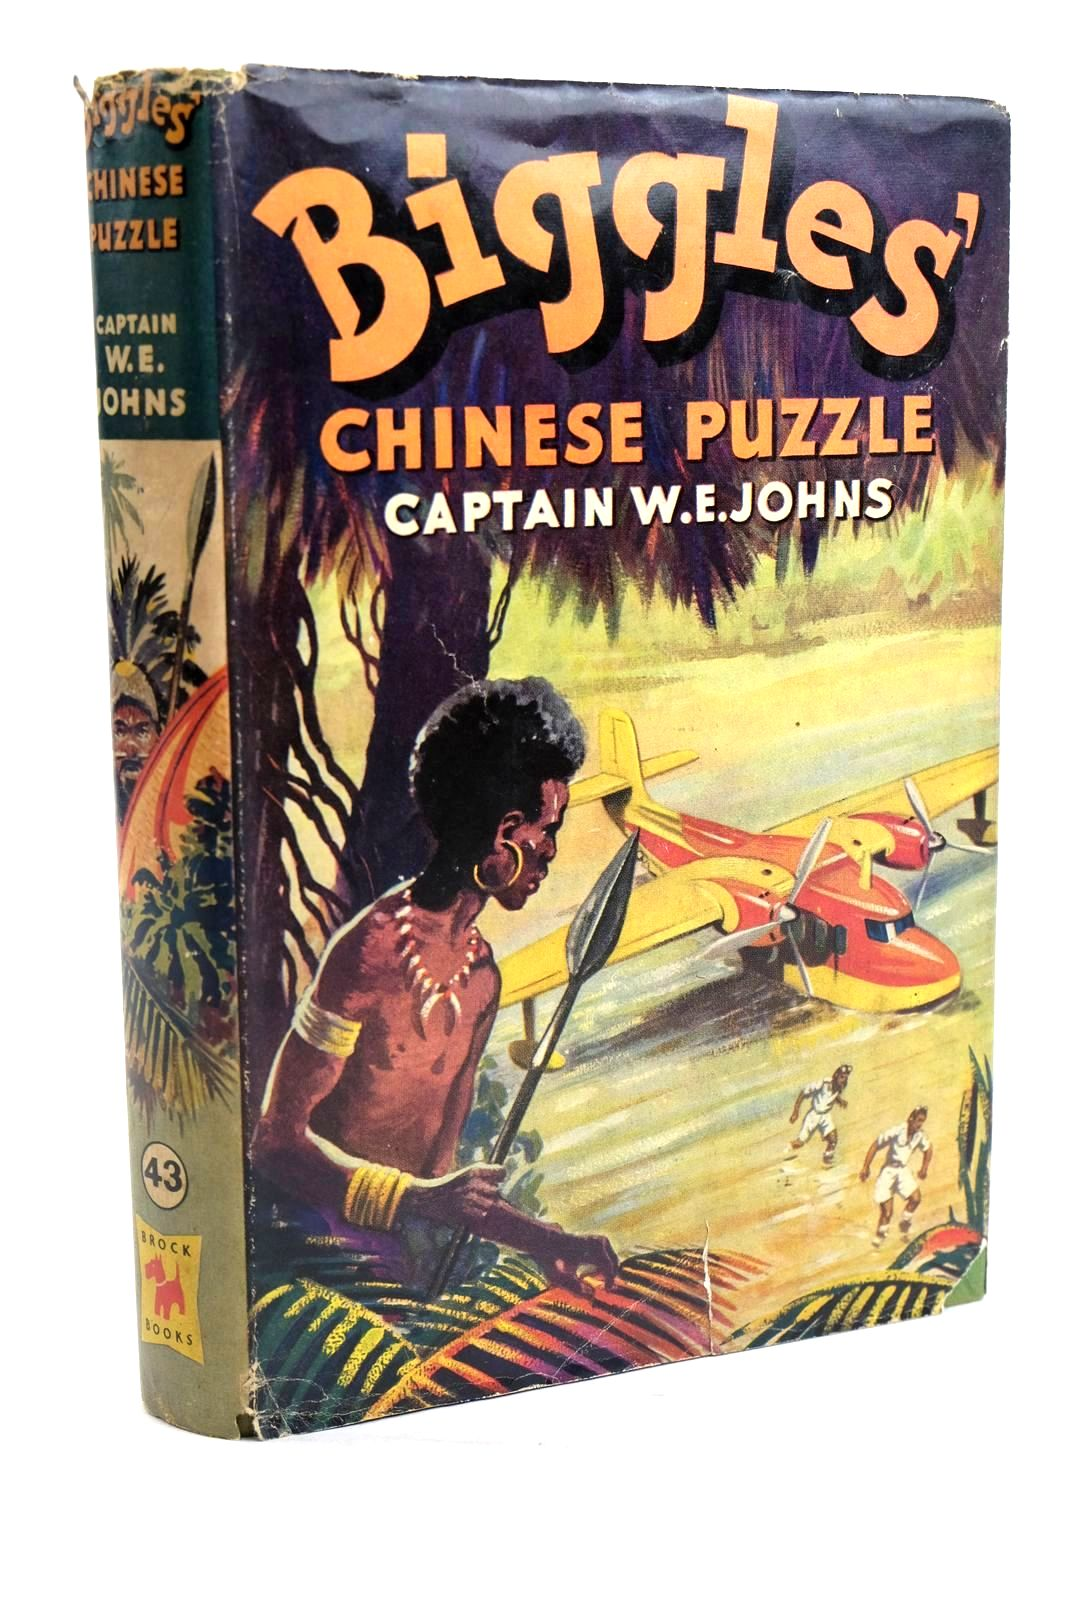 Photo of BIGGLES' CHINESE PUZZLE written by Johns, W.E. illustrated by Stead, Leslie published by Brockhampton Press Ltd. (STOCK CODE: 1319721)  for sale by Stella & Rose's Books